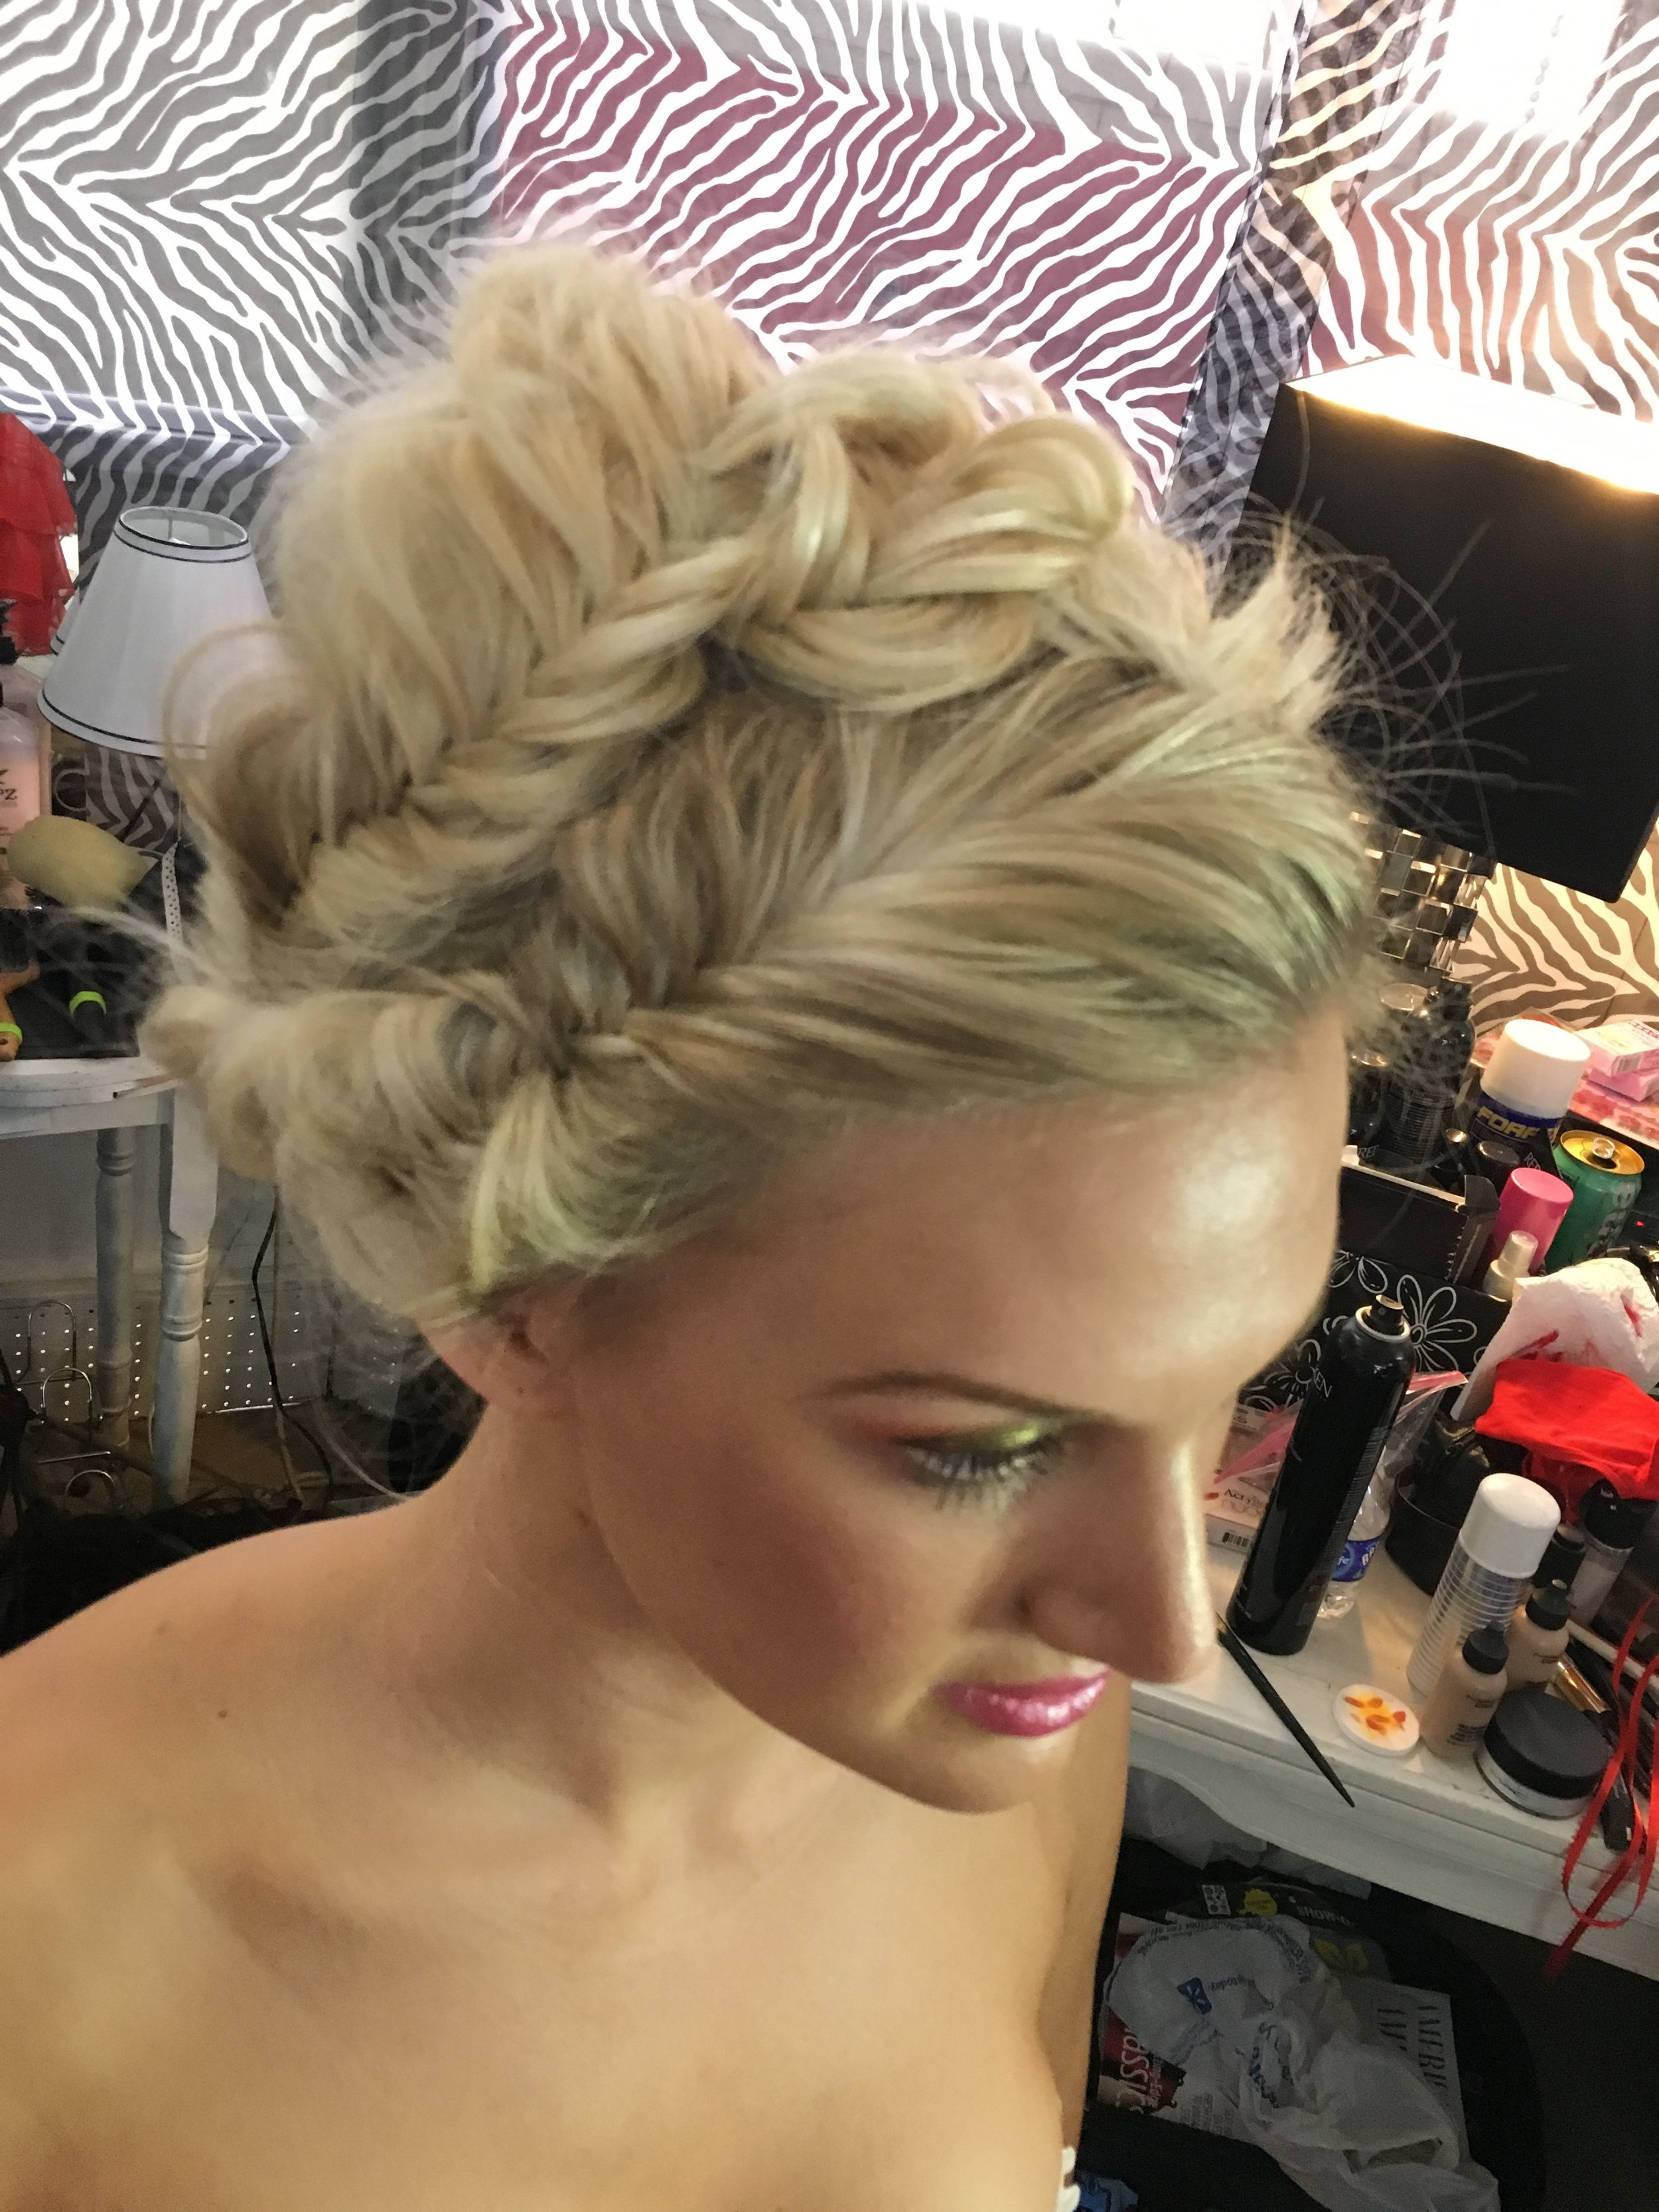 bts side view of Emily's updo